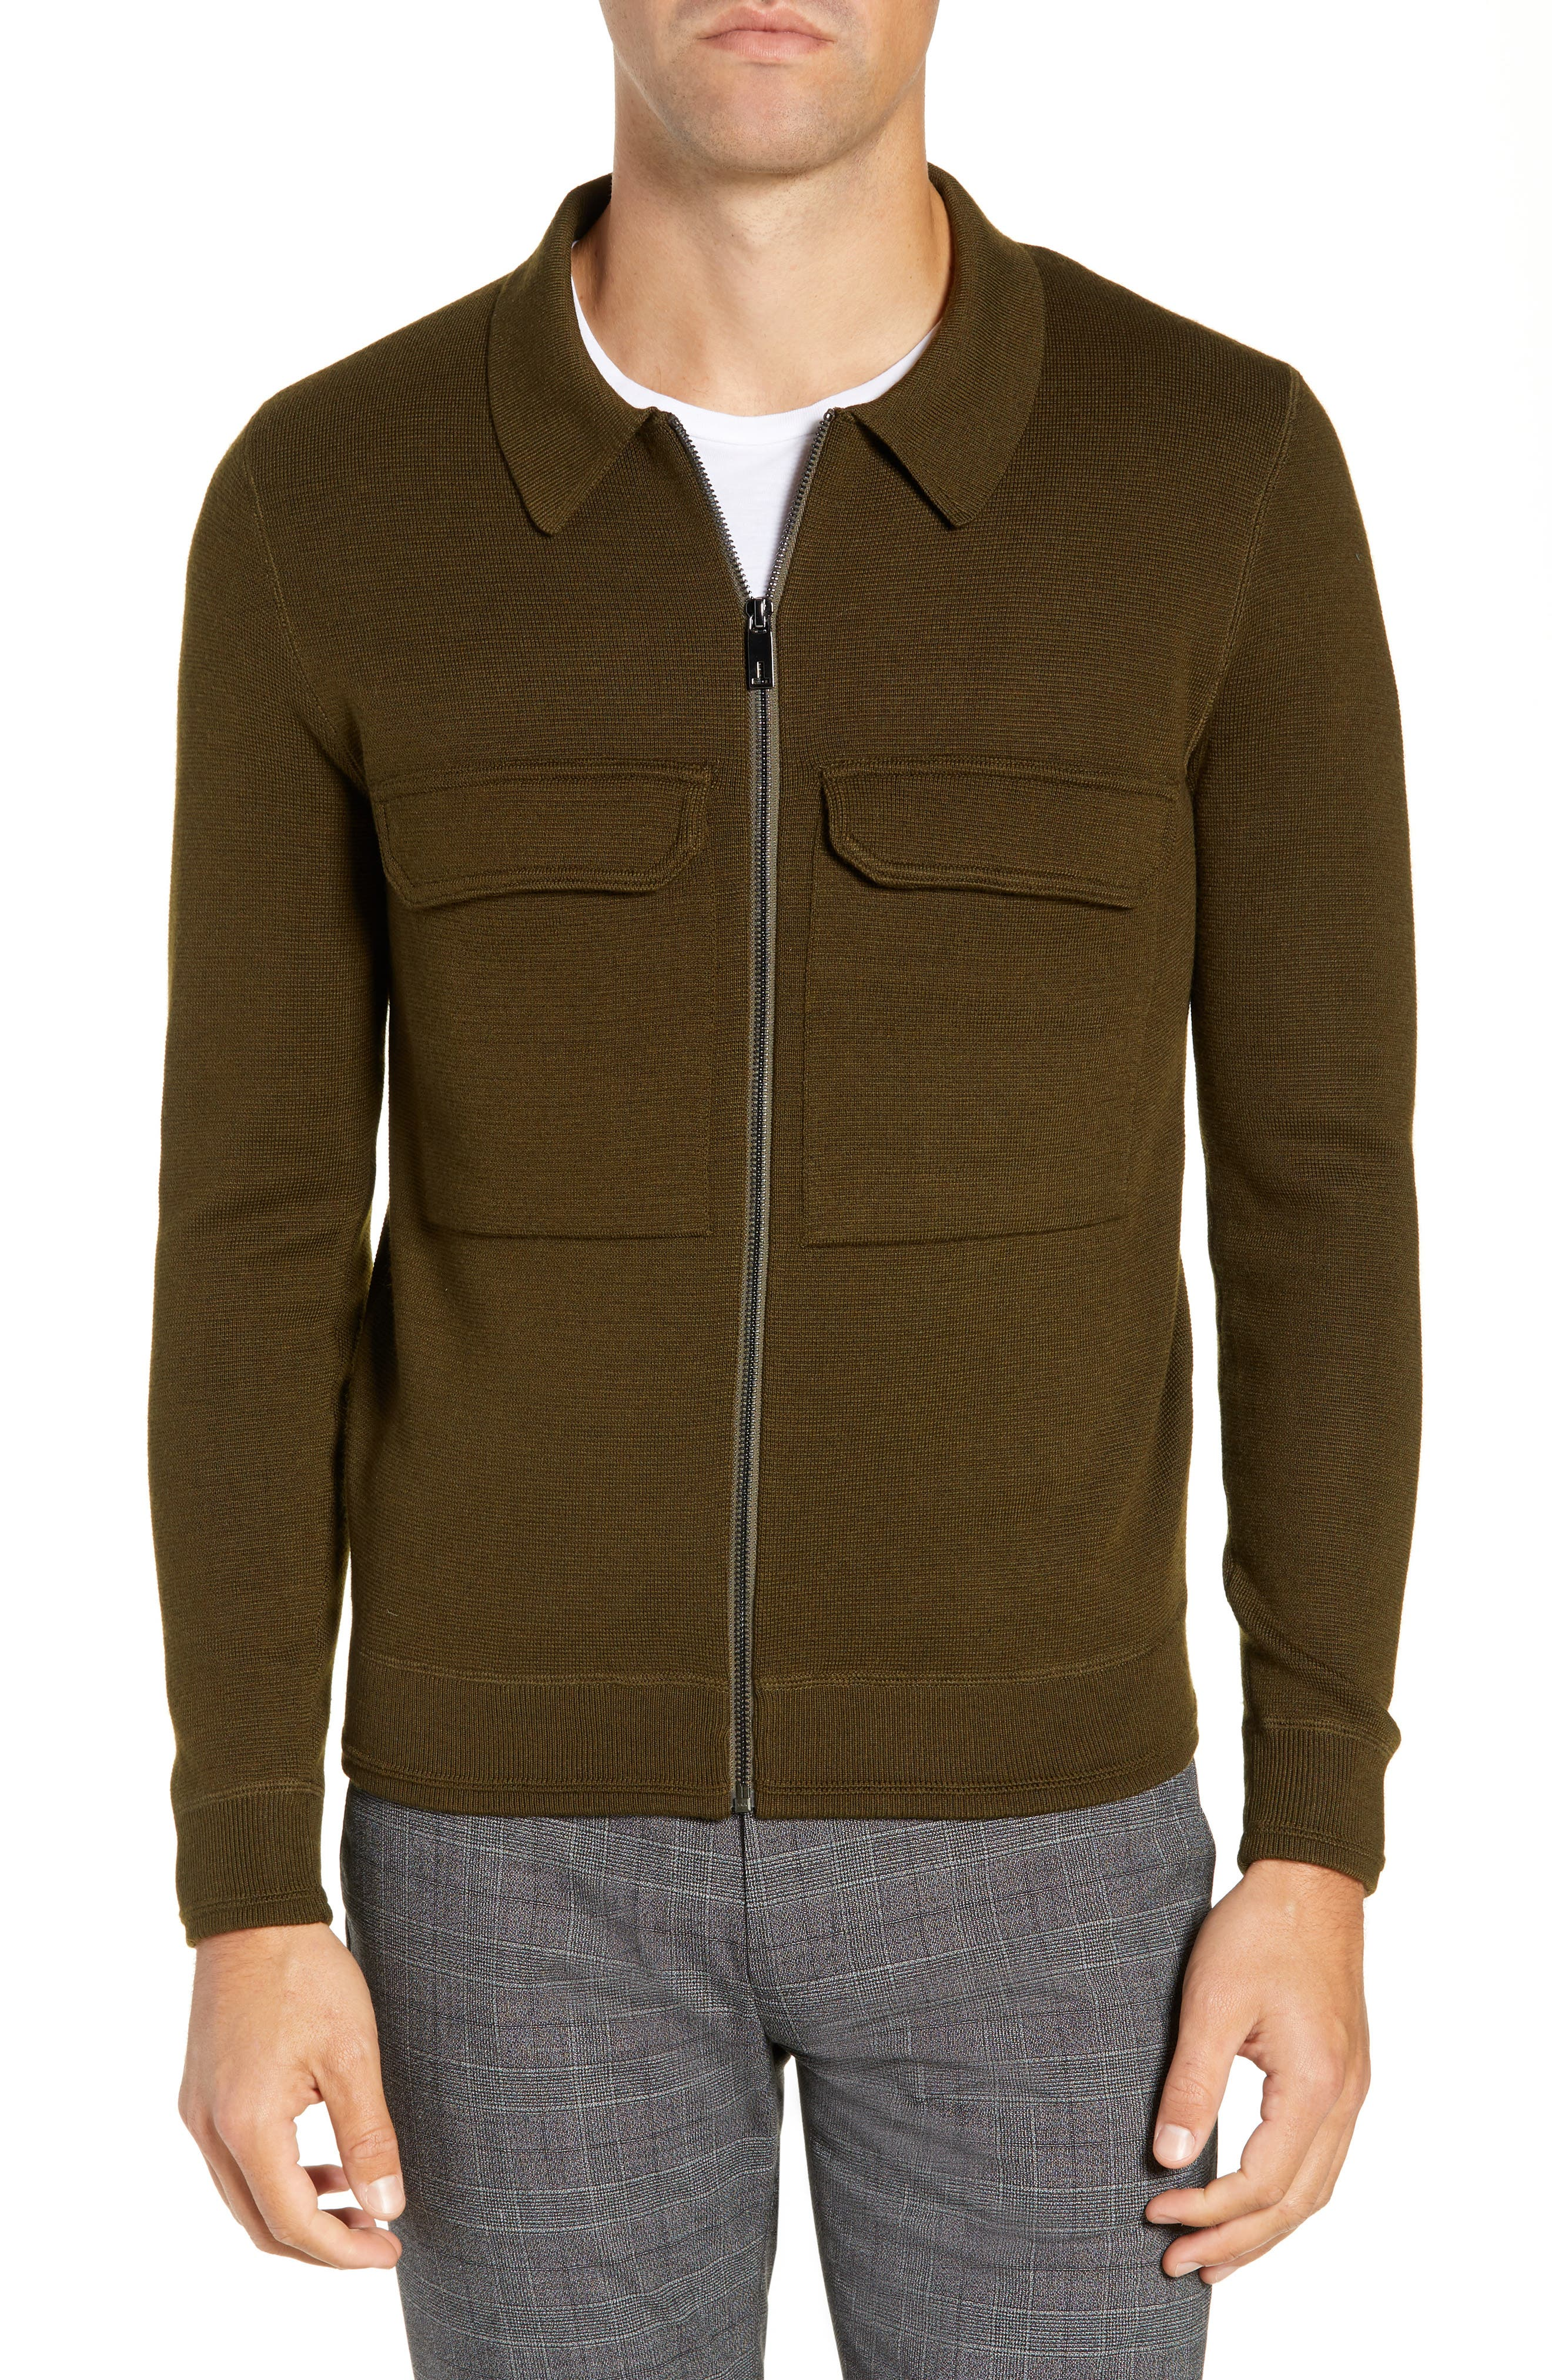 Akwa Slim Fit Zip Wool Blend Sweater,                             Main thumbnail 1, color,                             KHAKI